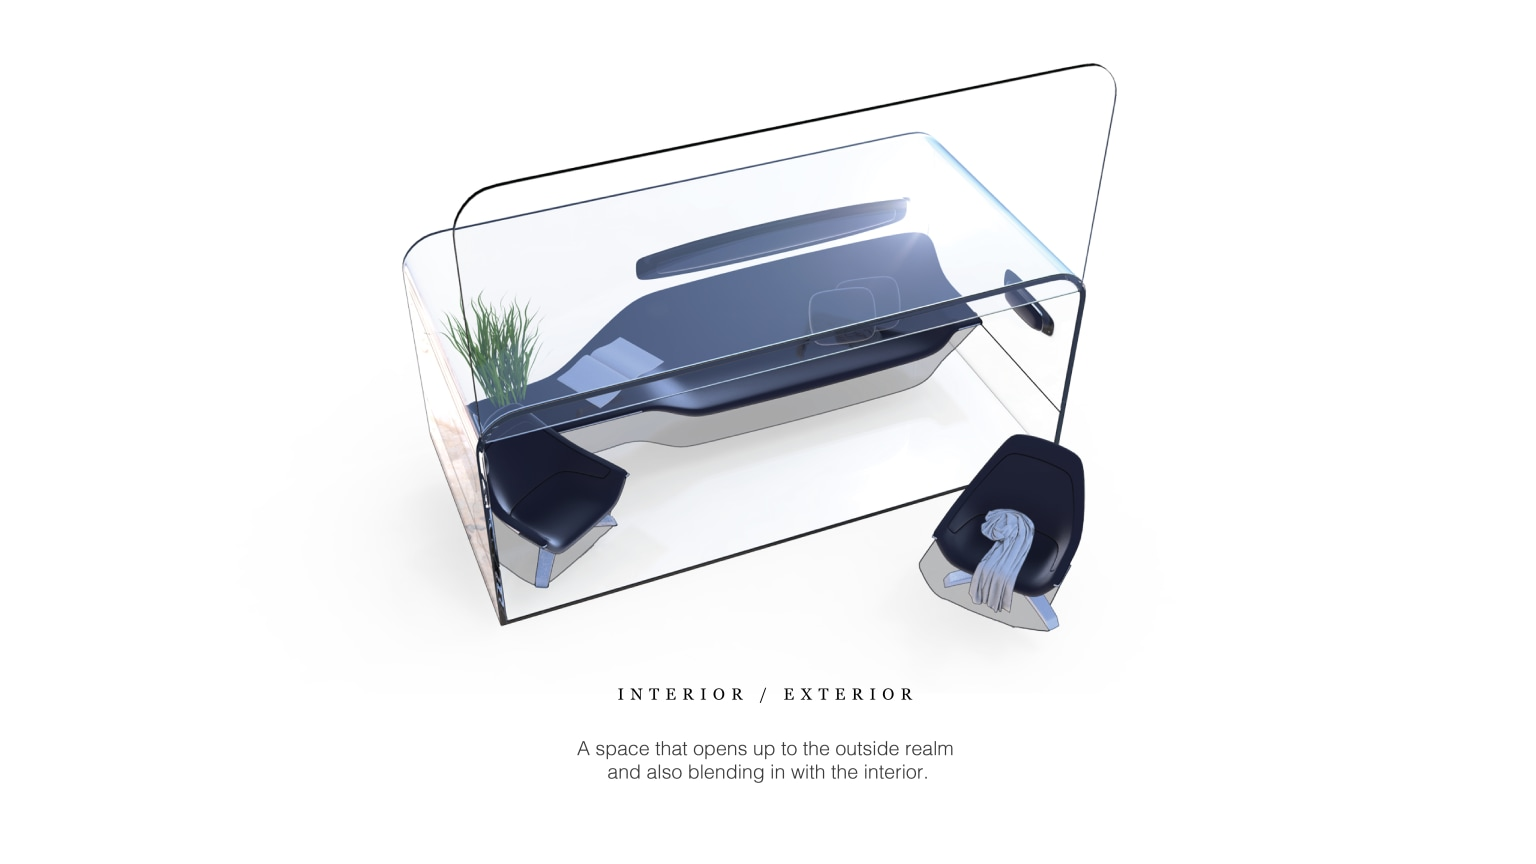 MOBILE LIVING SPACES